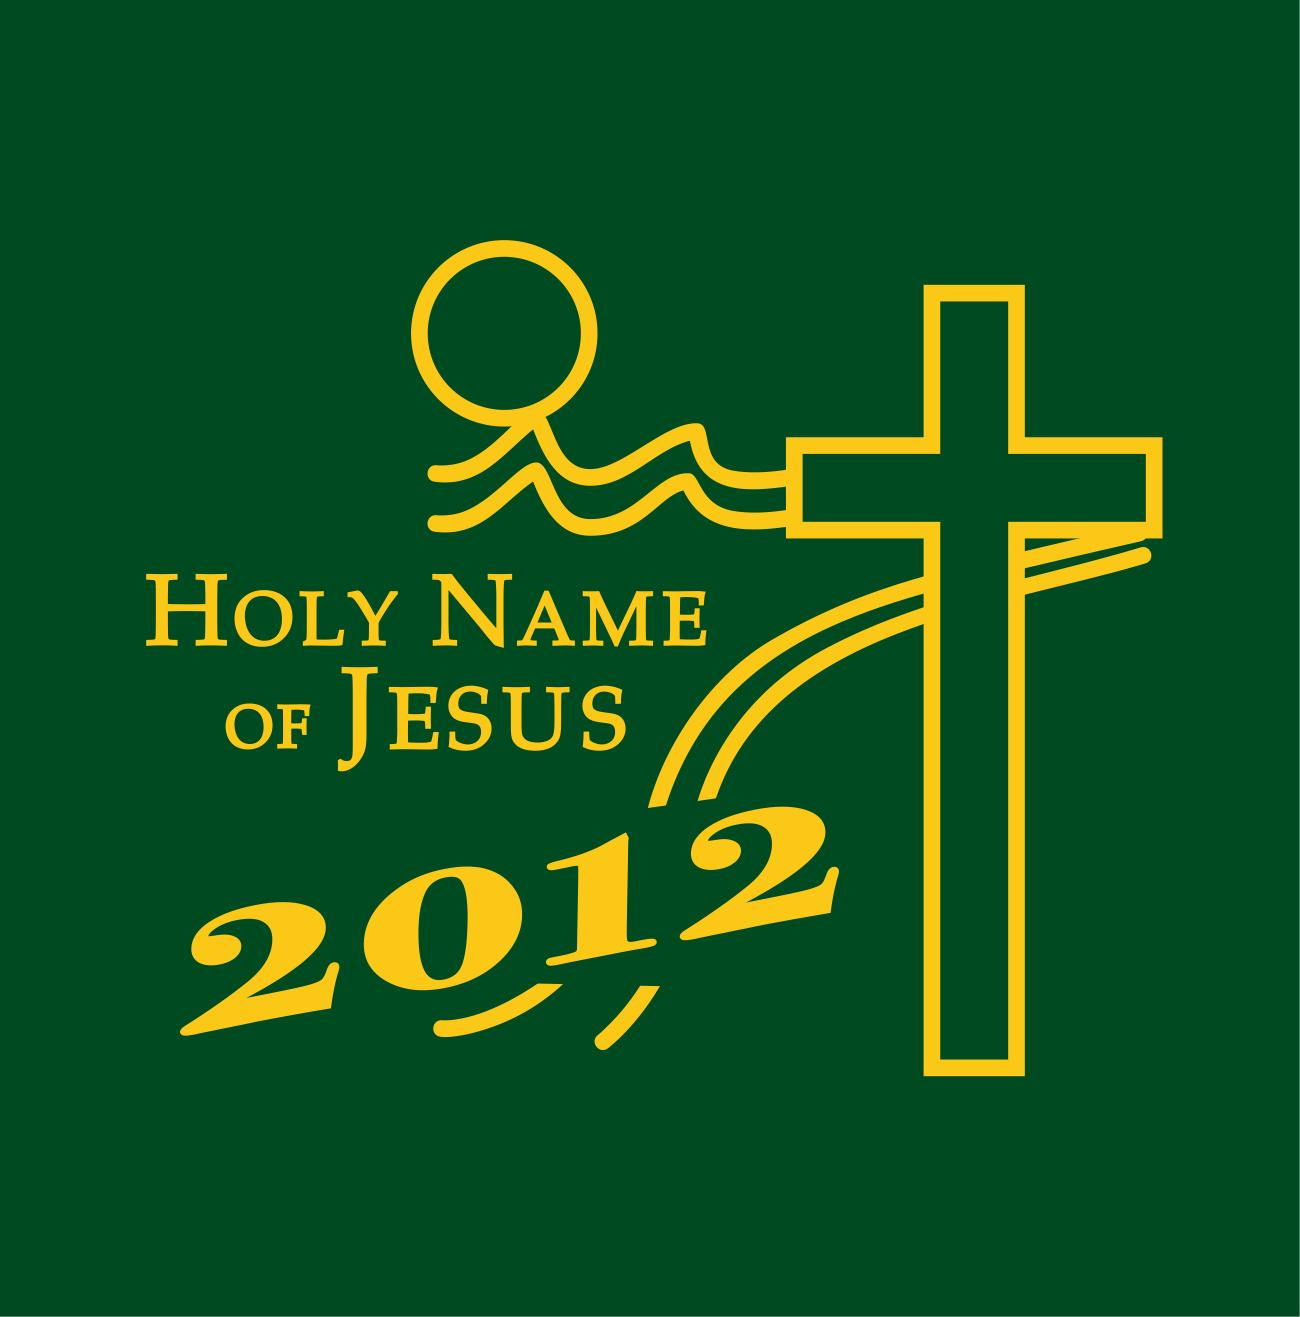 Shirt design melbourne - Contact Artlab T Shirts And Graphics When Your Church Is In Need Of Our Services 321 984 8844